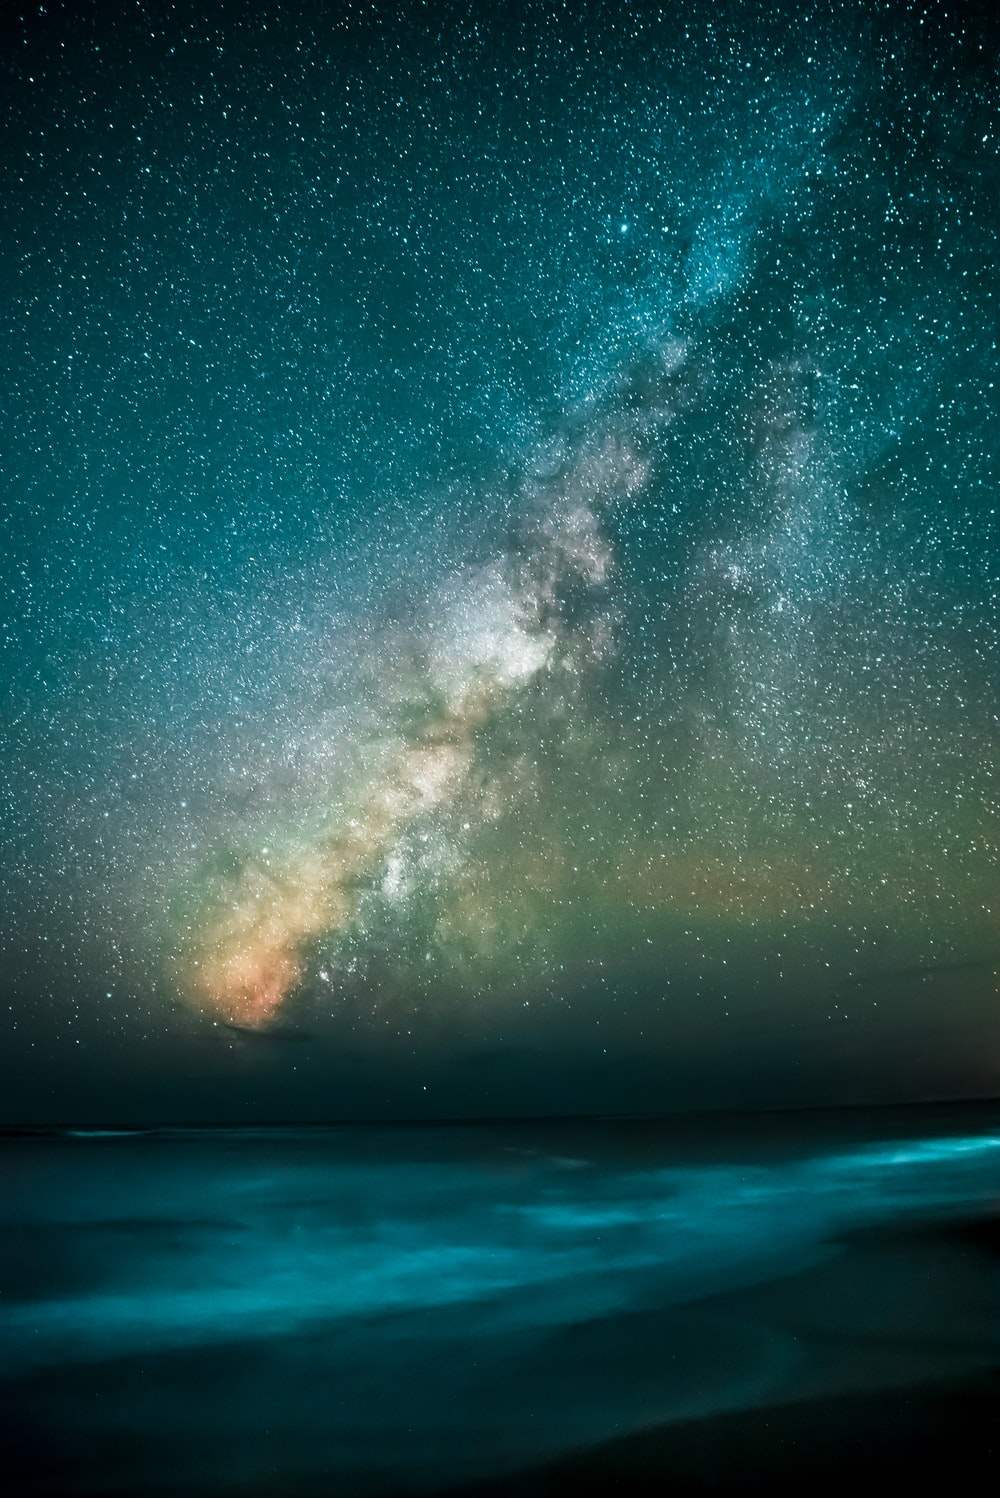 stars overlooking body of water during nighttime